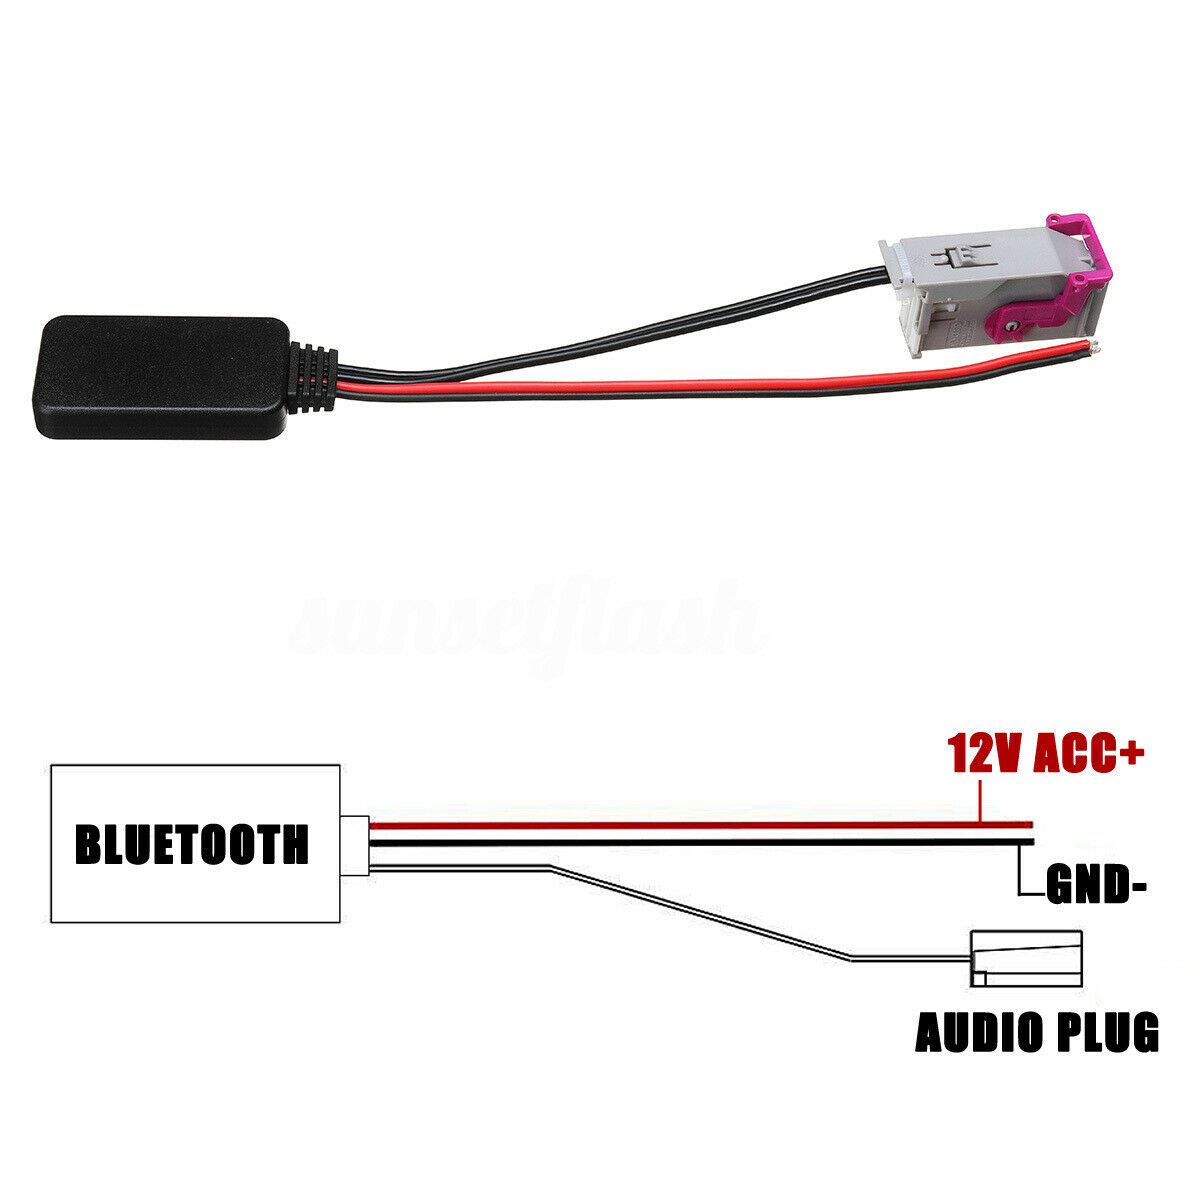 RNS-E Host Aux Kabel Für Audi A3 A4 A6 <font><b>32</b></font> <font><b>Pin</b></font> <font><b>Adapter</b></font> Bluetooth Audio Empfänger image